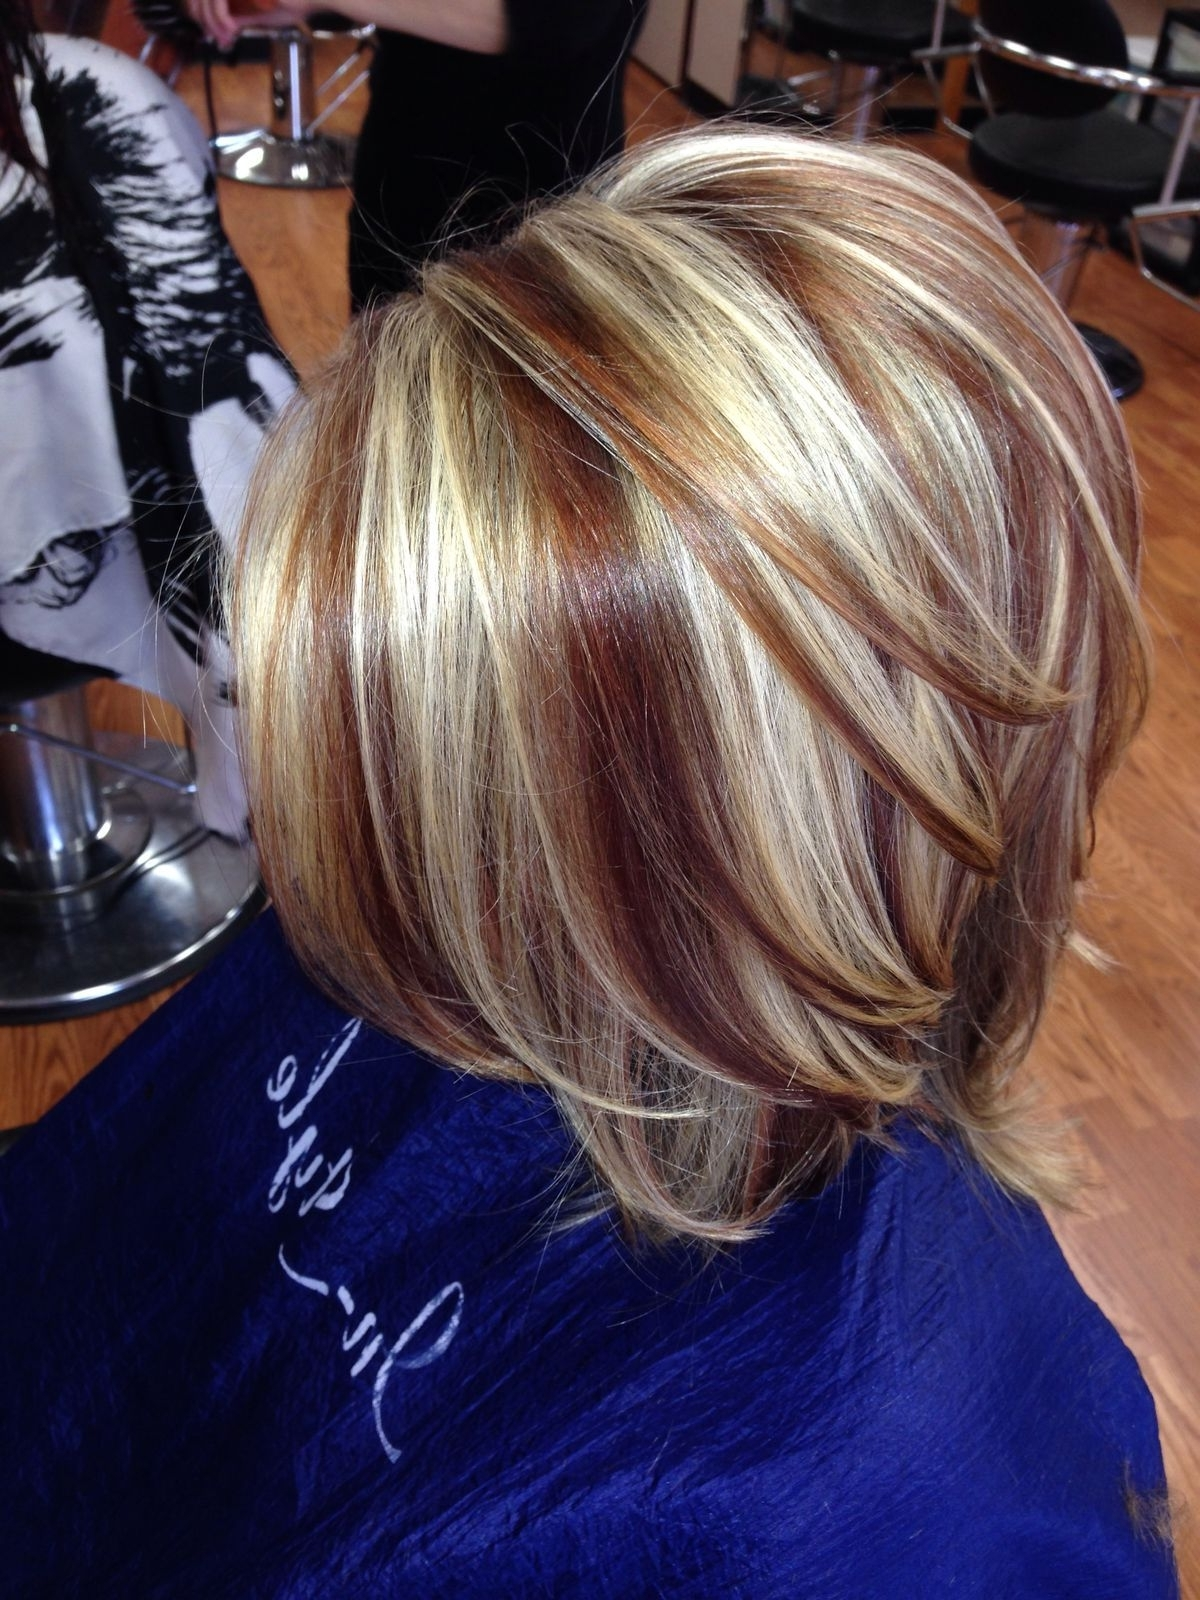 Two Toned Short Haircuts Featuring Blonde And Brown Hair Colors Intended For 2018 Two Tone Pixie Hairstyles (View 18 of 20)